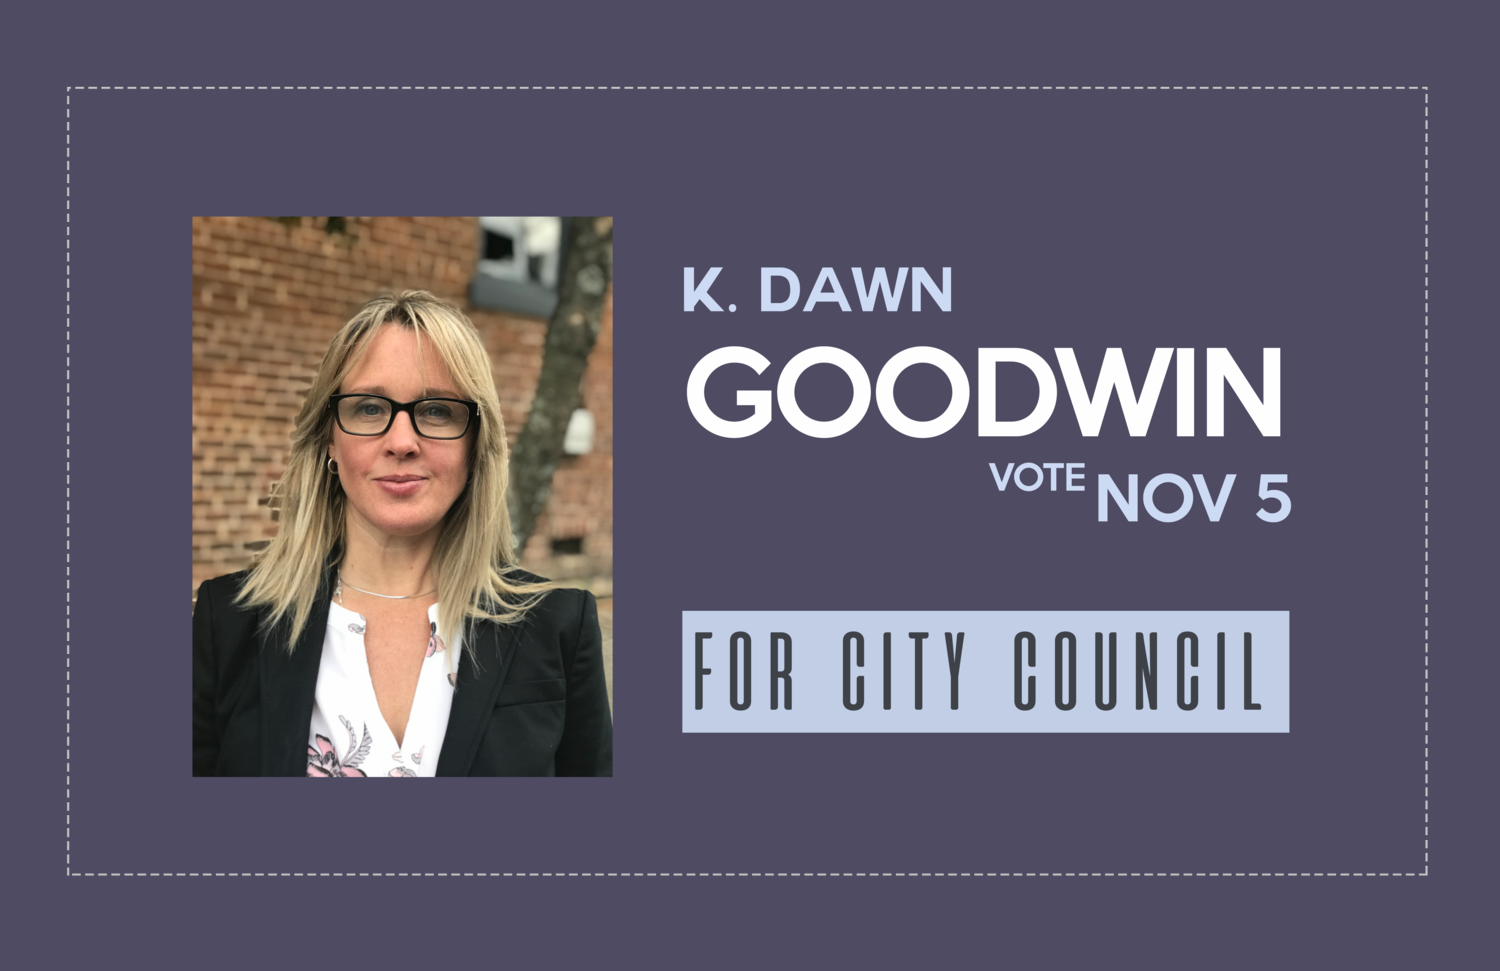 K. Dawn Goodwin for City Council